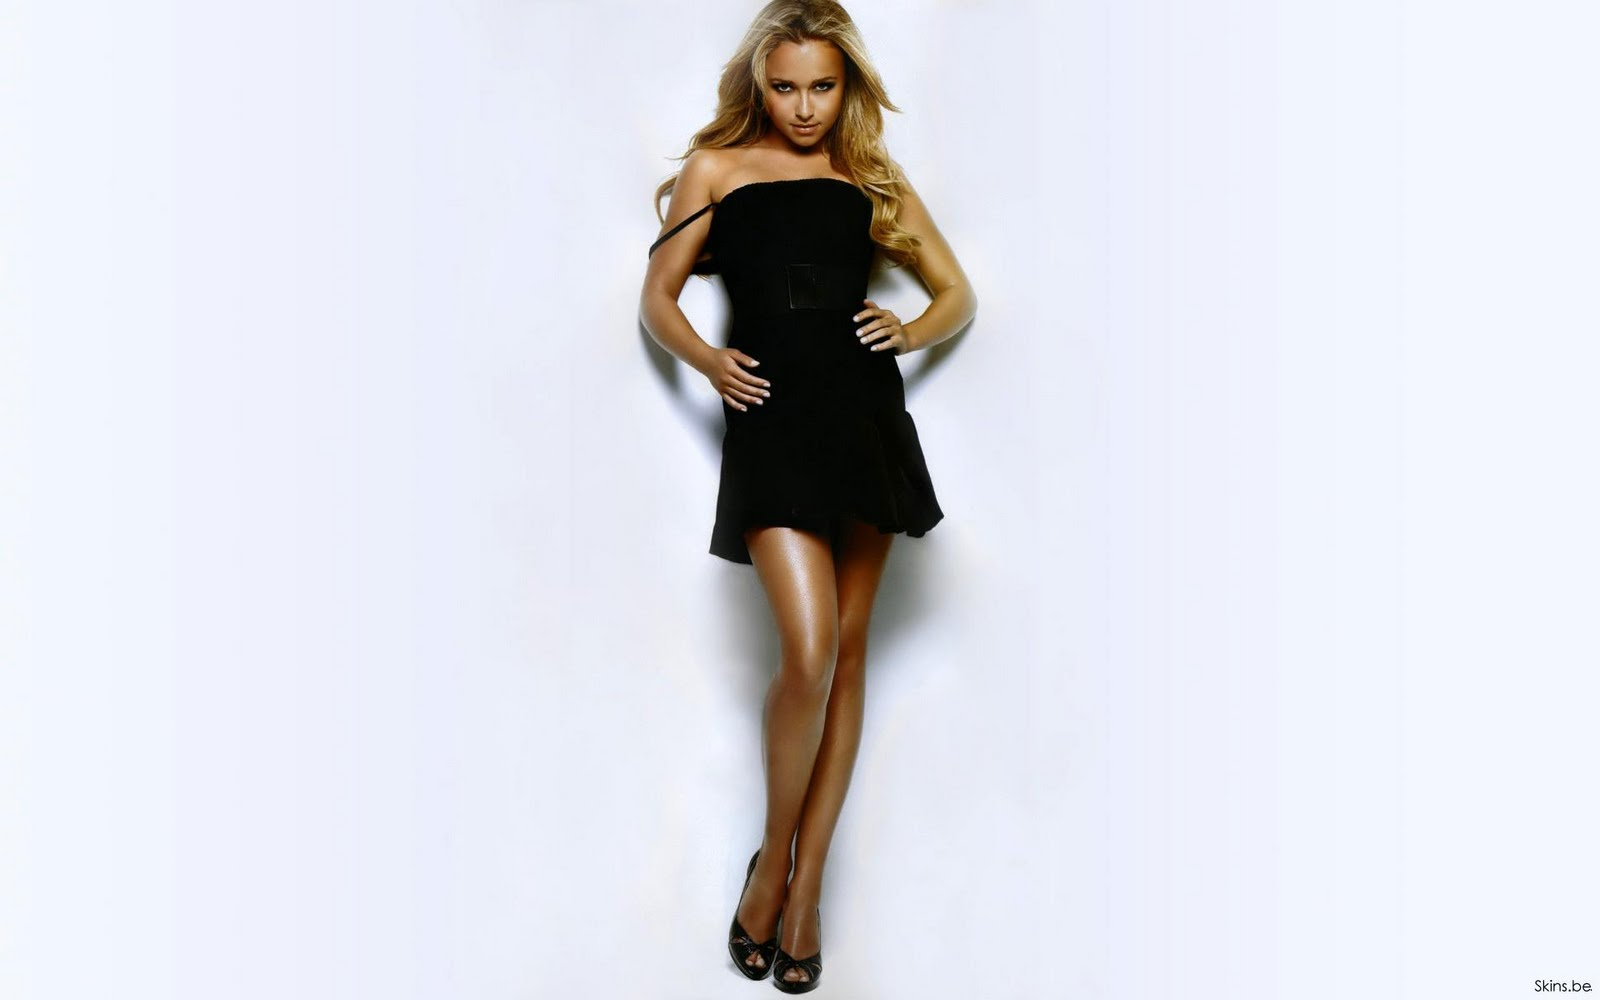 http://3.bp.blogspot.com/-TjN6FcXD1U0/TtowWDsG8-I/AAAAAAAAJ60/RICHI7d8844/s1600/Hayden_Panettiere_model_wallpapers_02.jpg